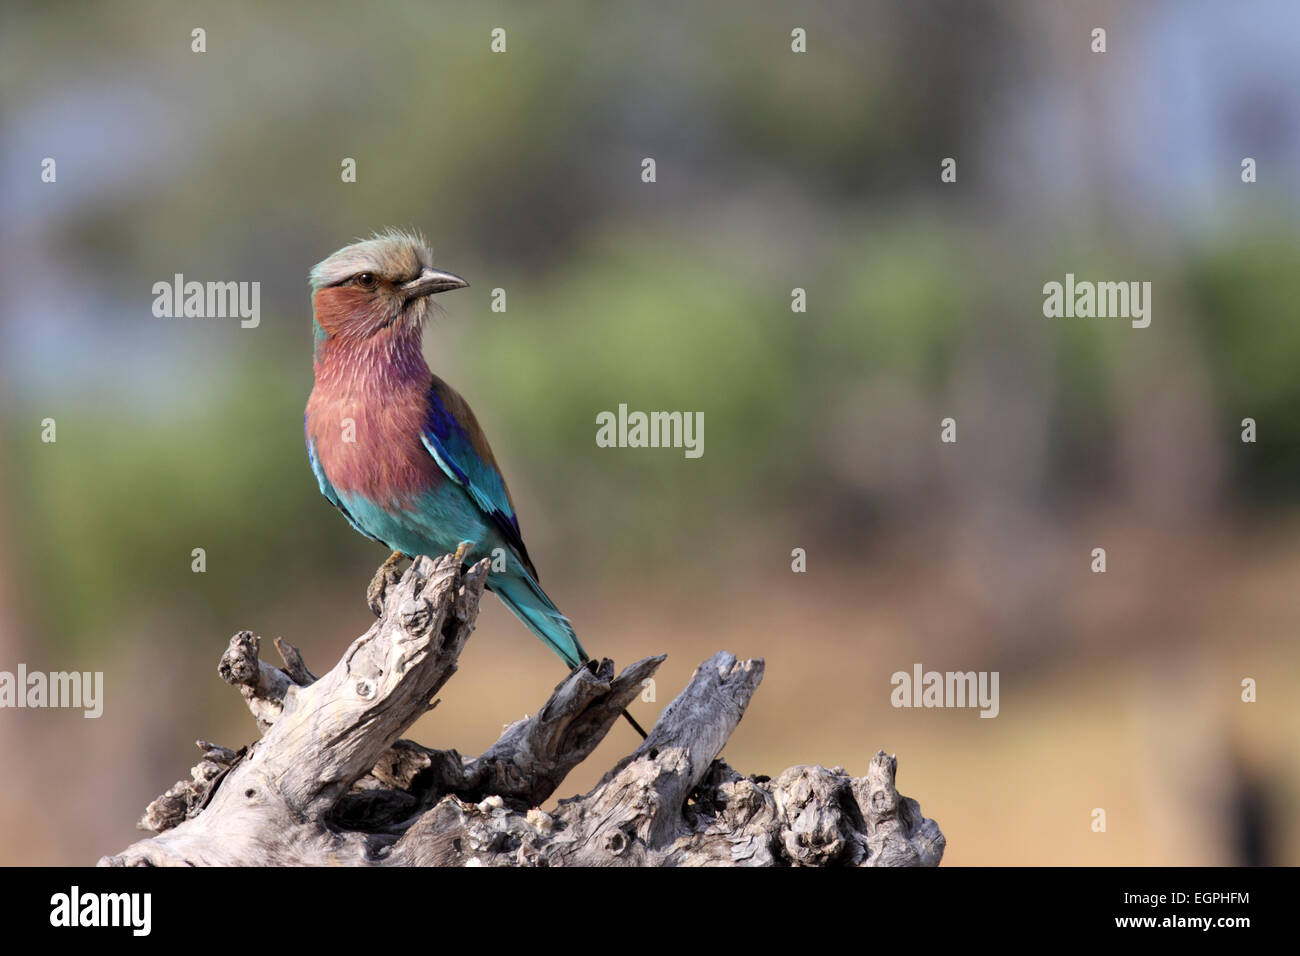 Lilac-breasted roller perched on dead branch in Botswana Stock Photo